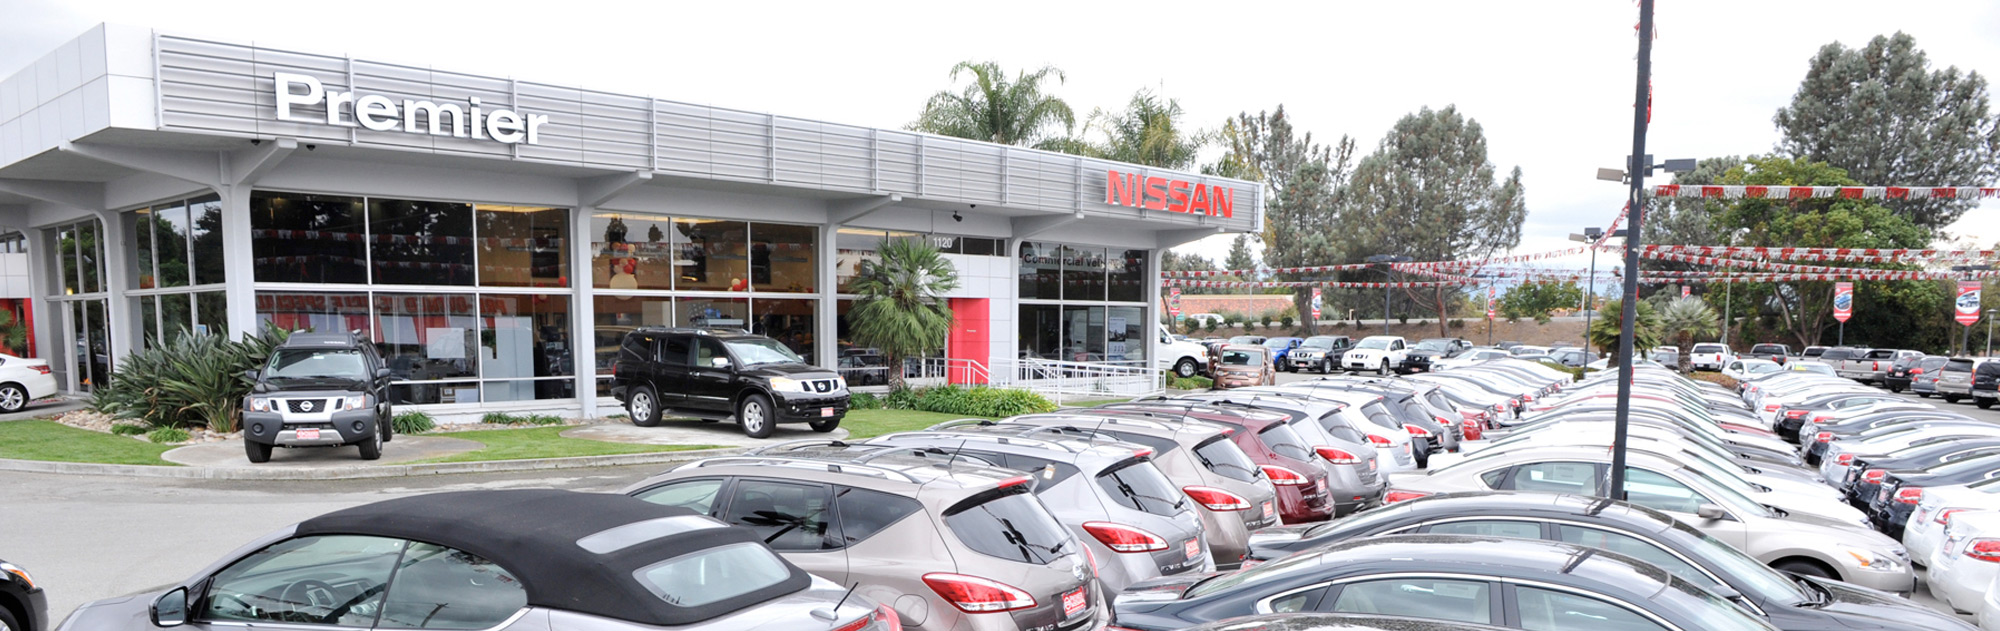 Premier Nissan Of San Jose   Serving Morgan Hill, Gilroy, Santa Cruz, Santa  Clara, Sunnyvale, CA